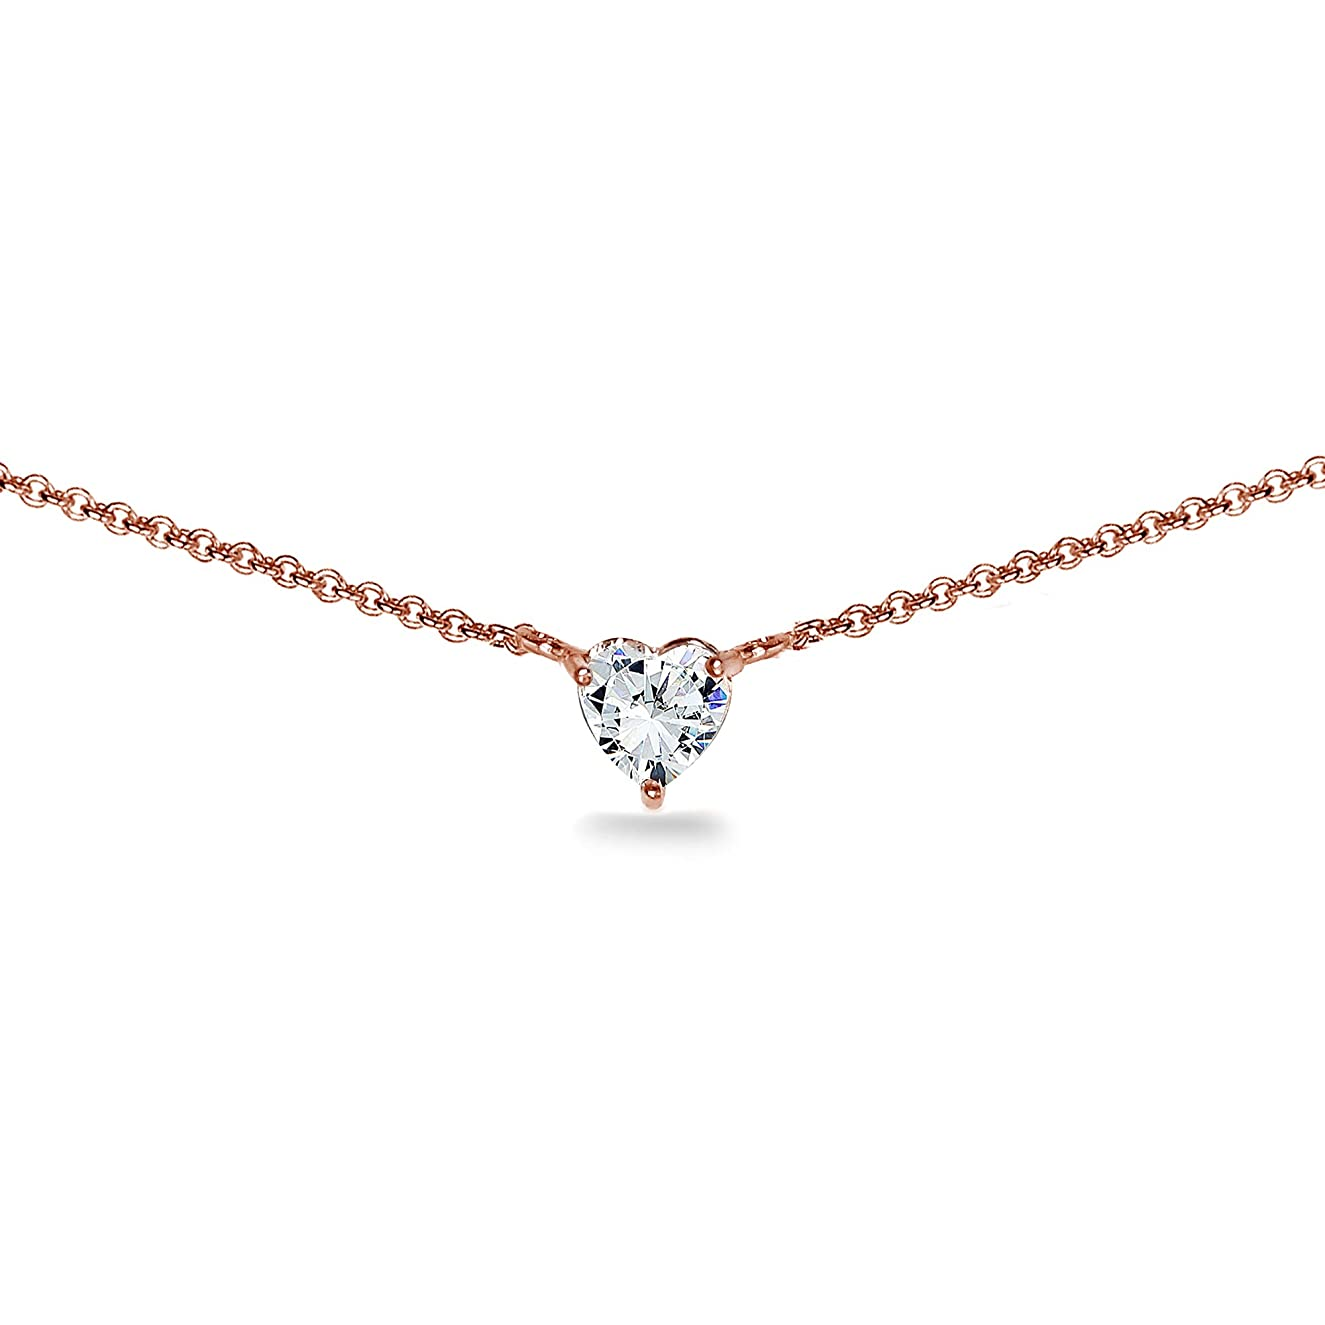 Rose Gold Flashed Sterling Silver 6mm Heart Choker Necklace Made with Swarovski Zirconia